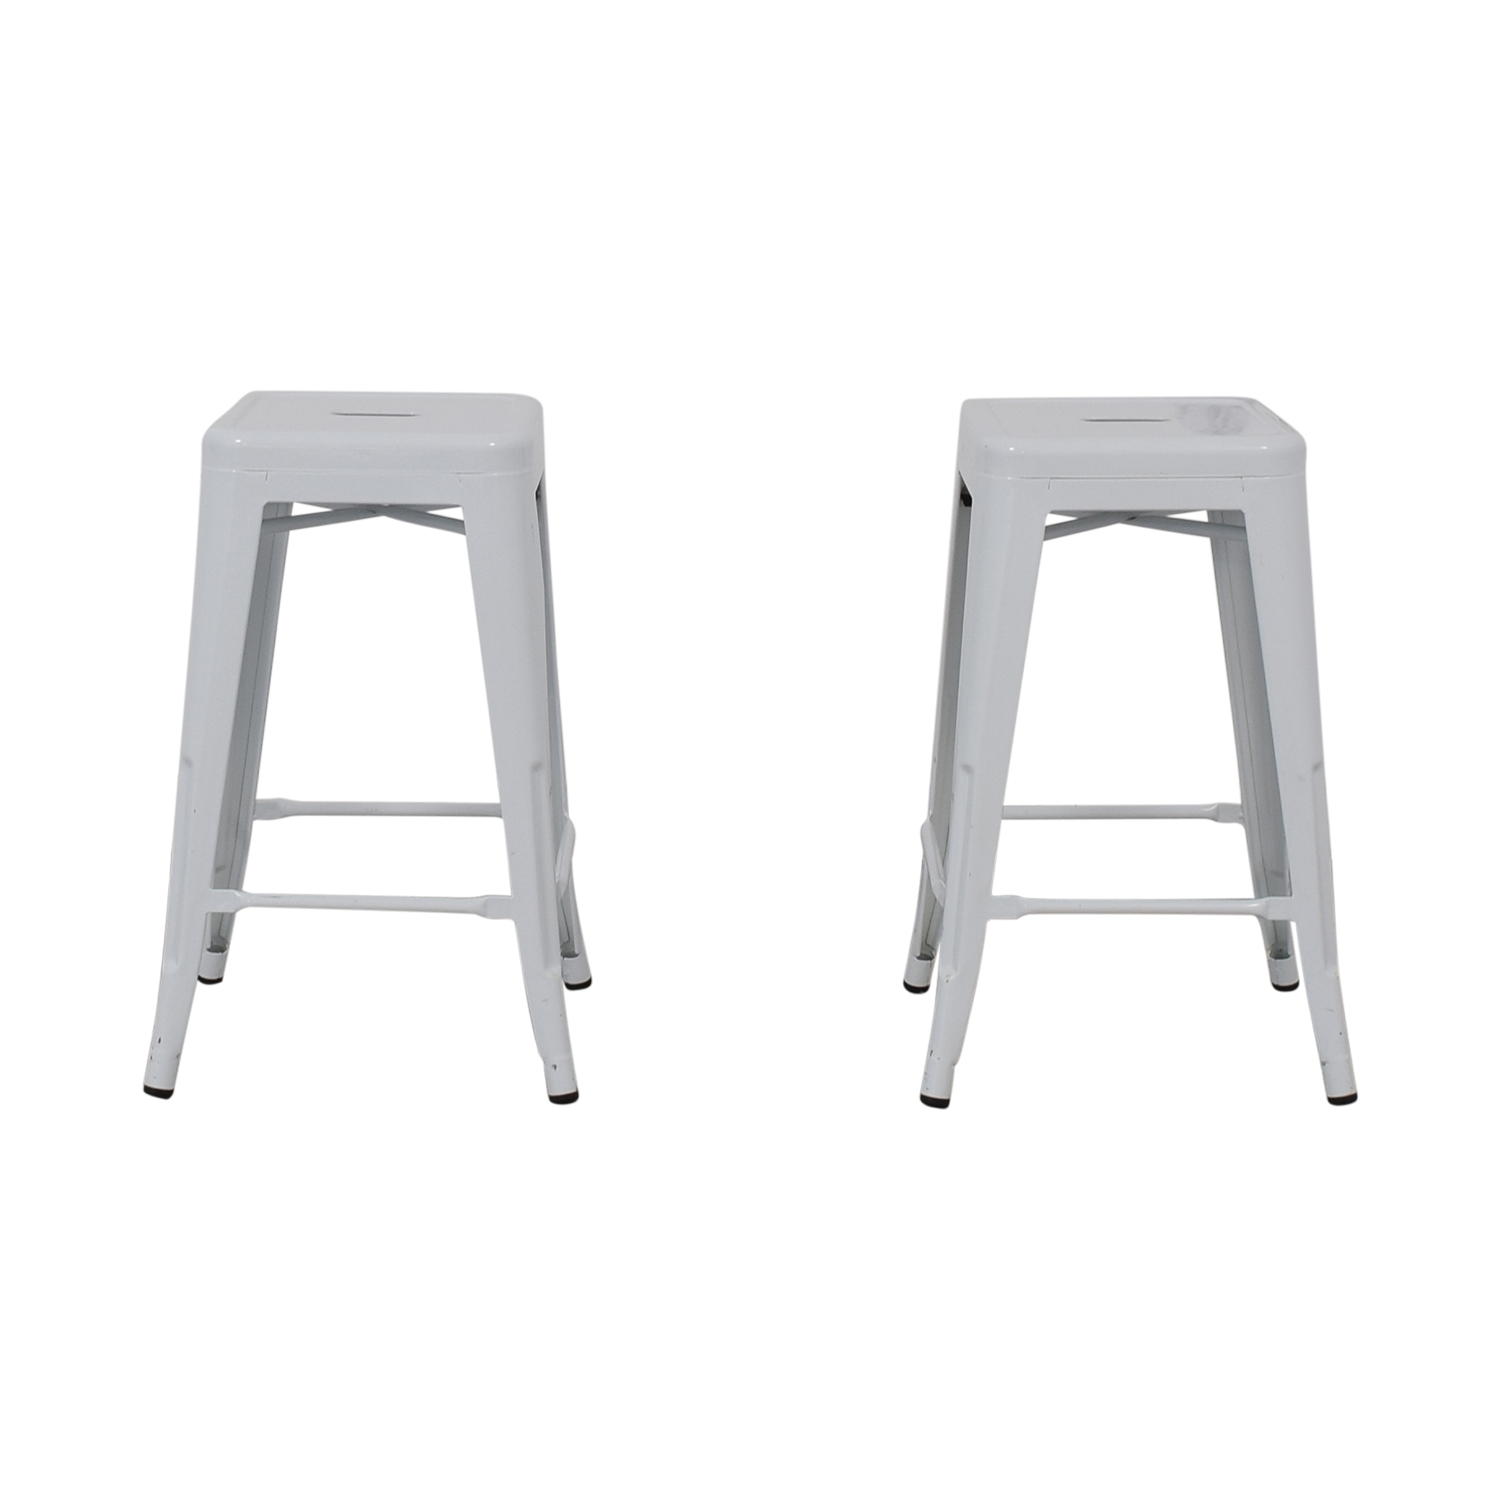 White Metal Stools dimensions